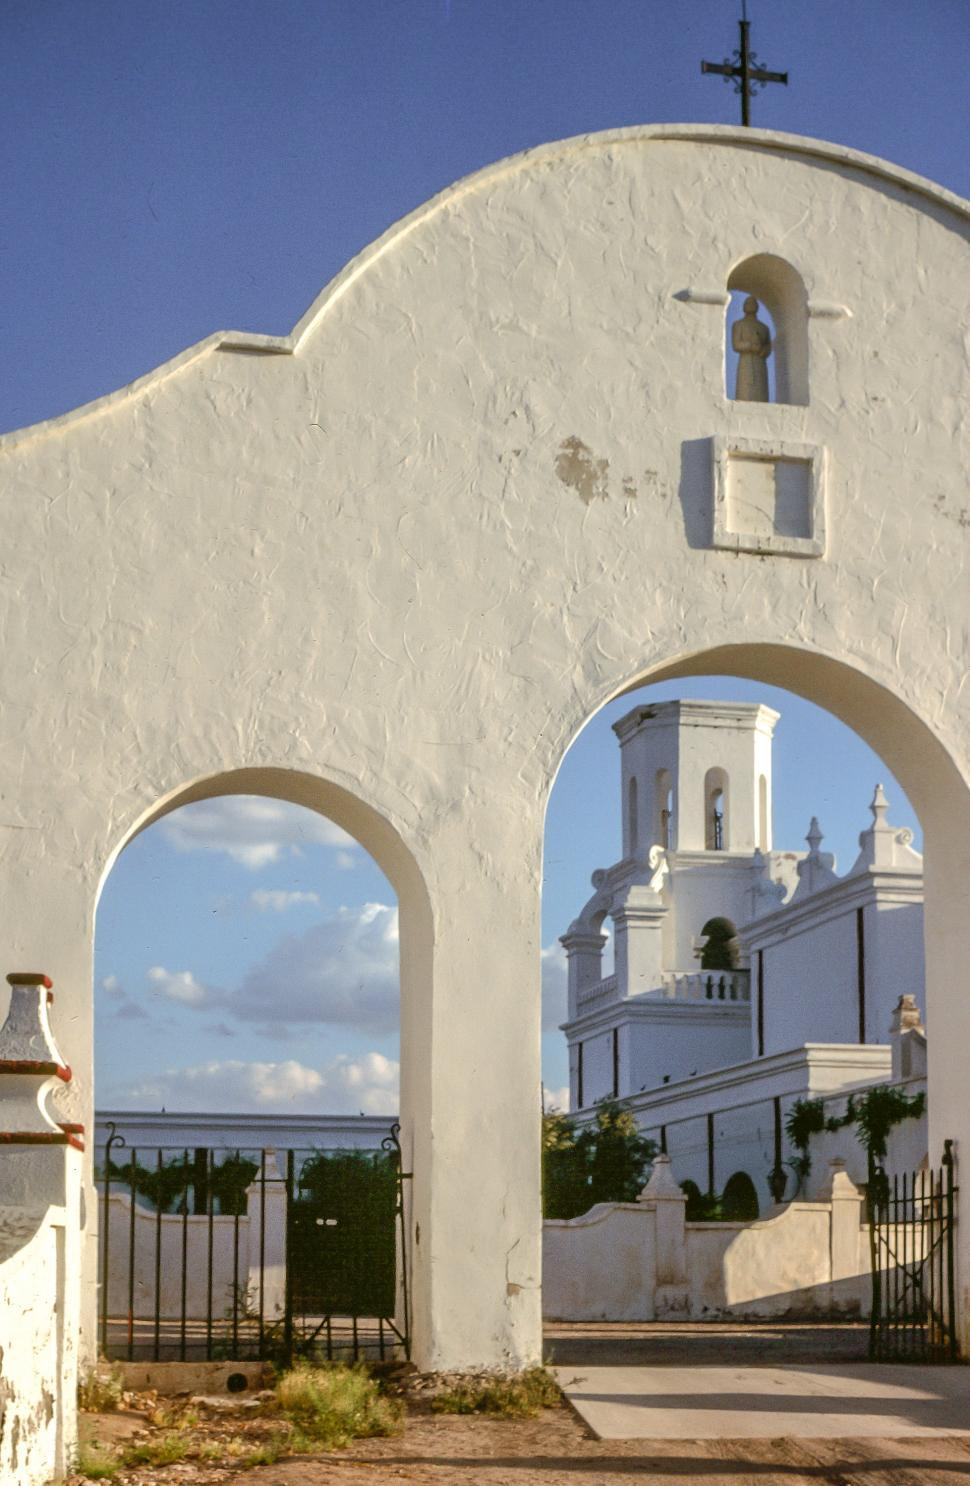 Download Free Stock Photo of Arches of San Xavier del Bac